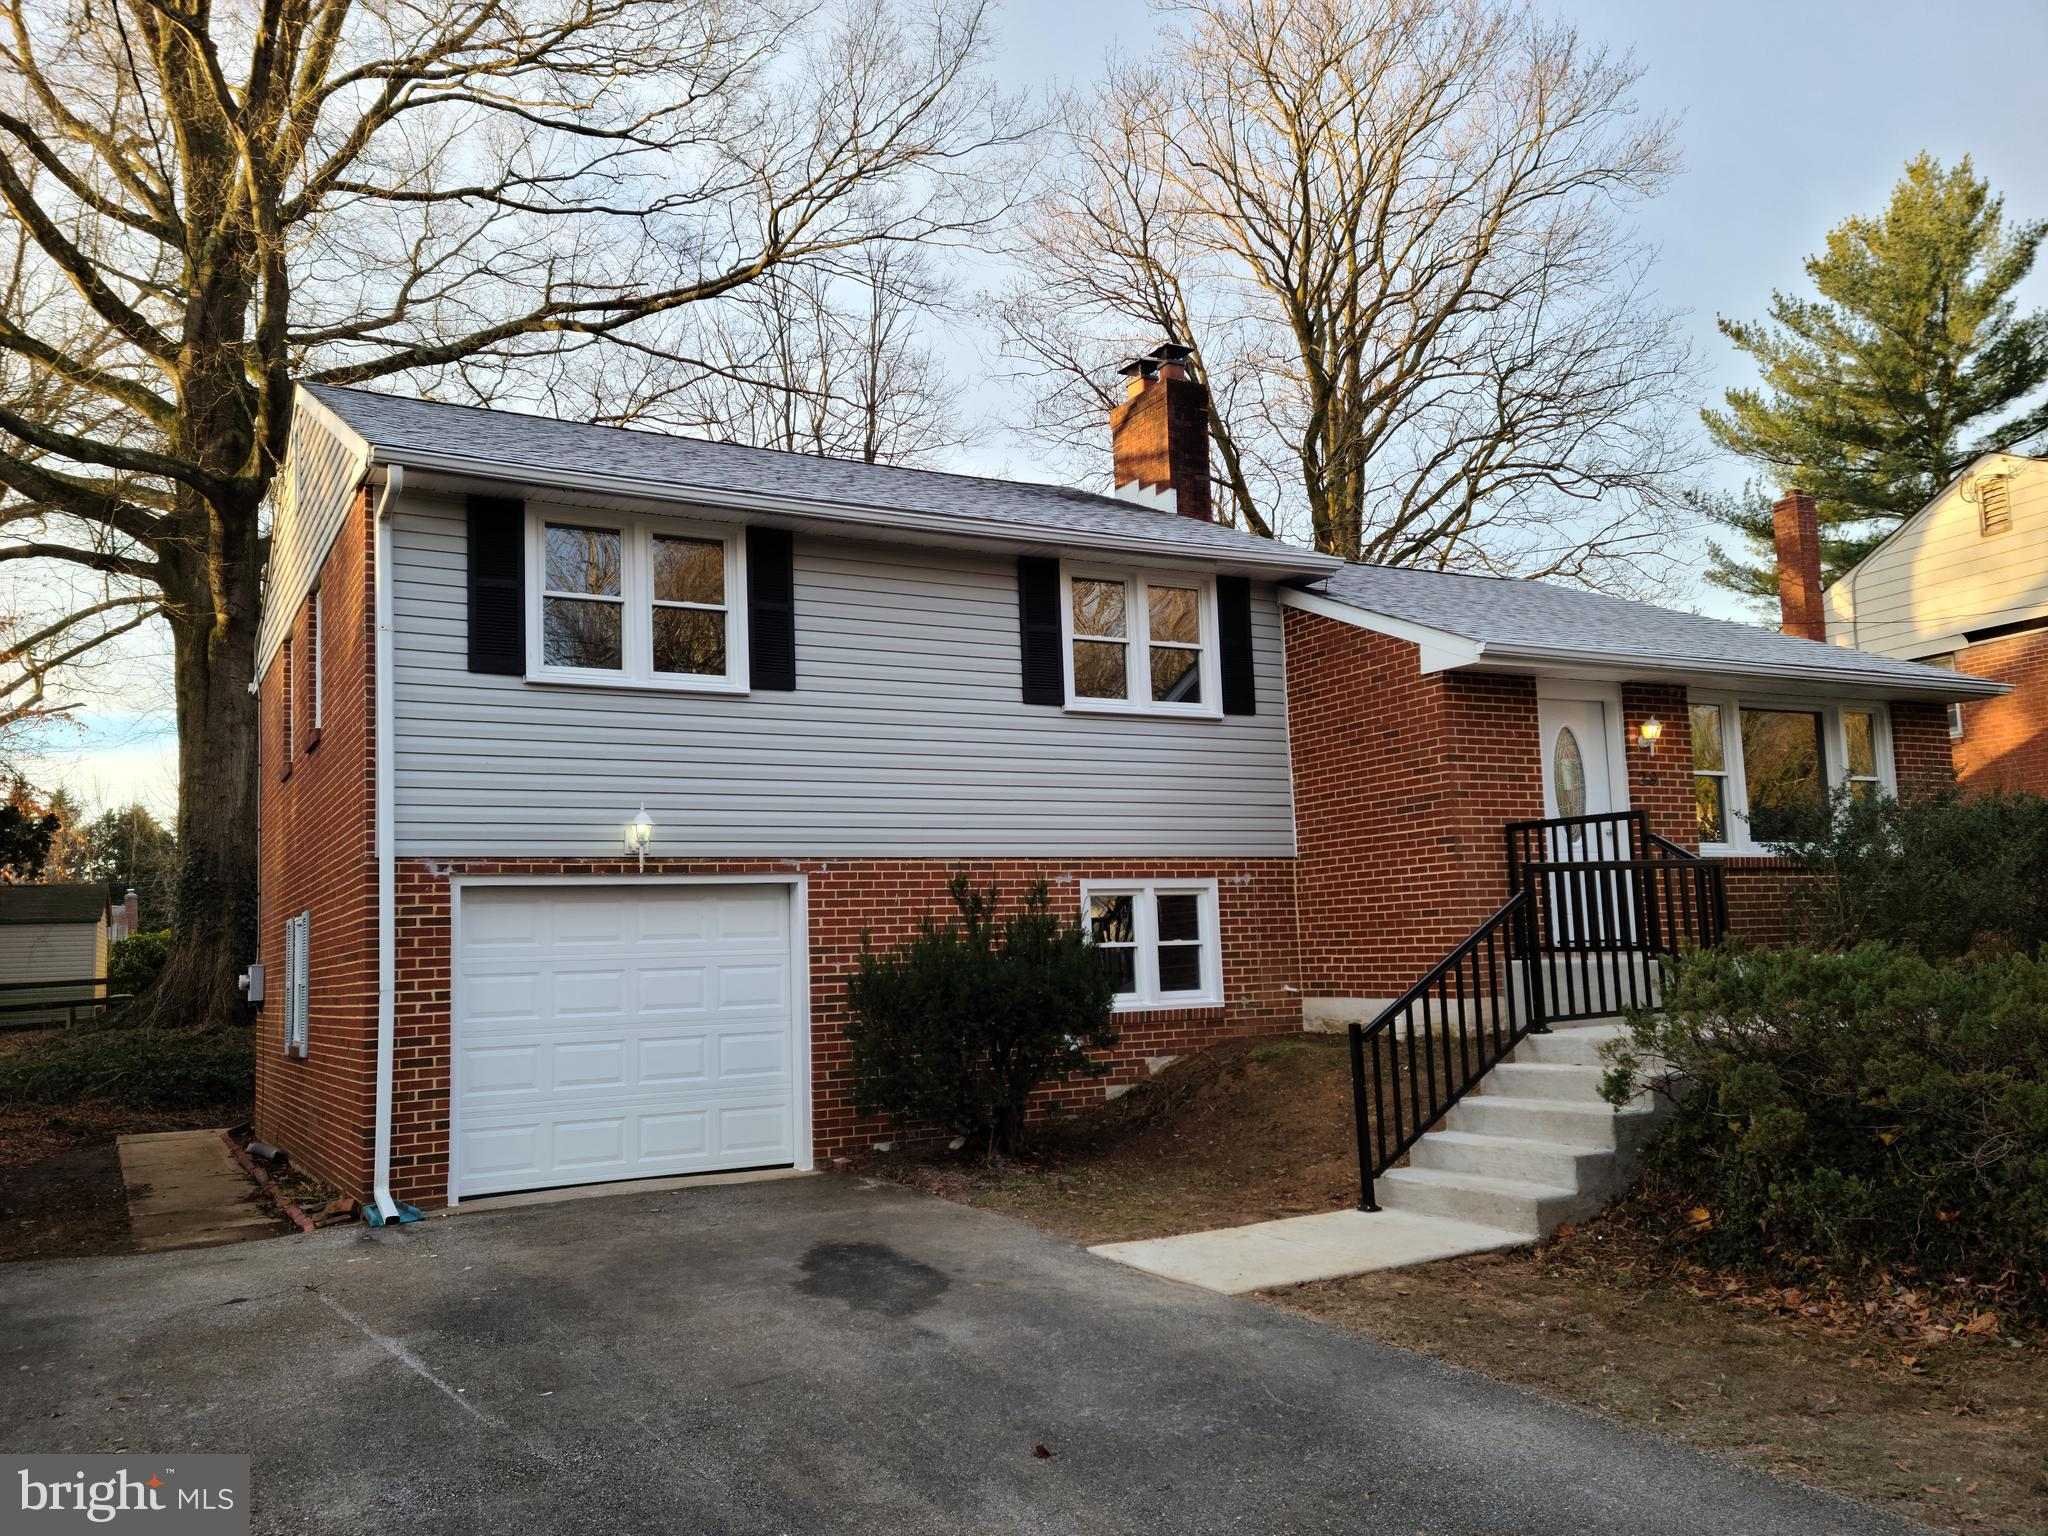 Beautifully uodated home in Newark. Main level has newly refinshed hardwoods, an open floor plan with a gorgeous Kitchen done in gray cabinets, granite countertops, huge island, and a new stainless package. Upstairs there are 3 bedrooms and 2 full bathrooms completely accented in tile. There is also a partial finished basement, garage,  and large backyard.